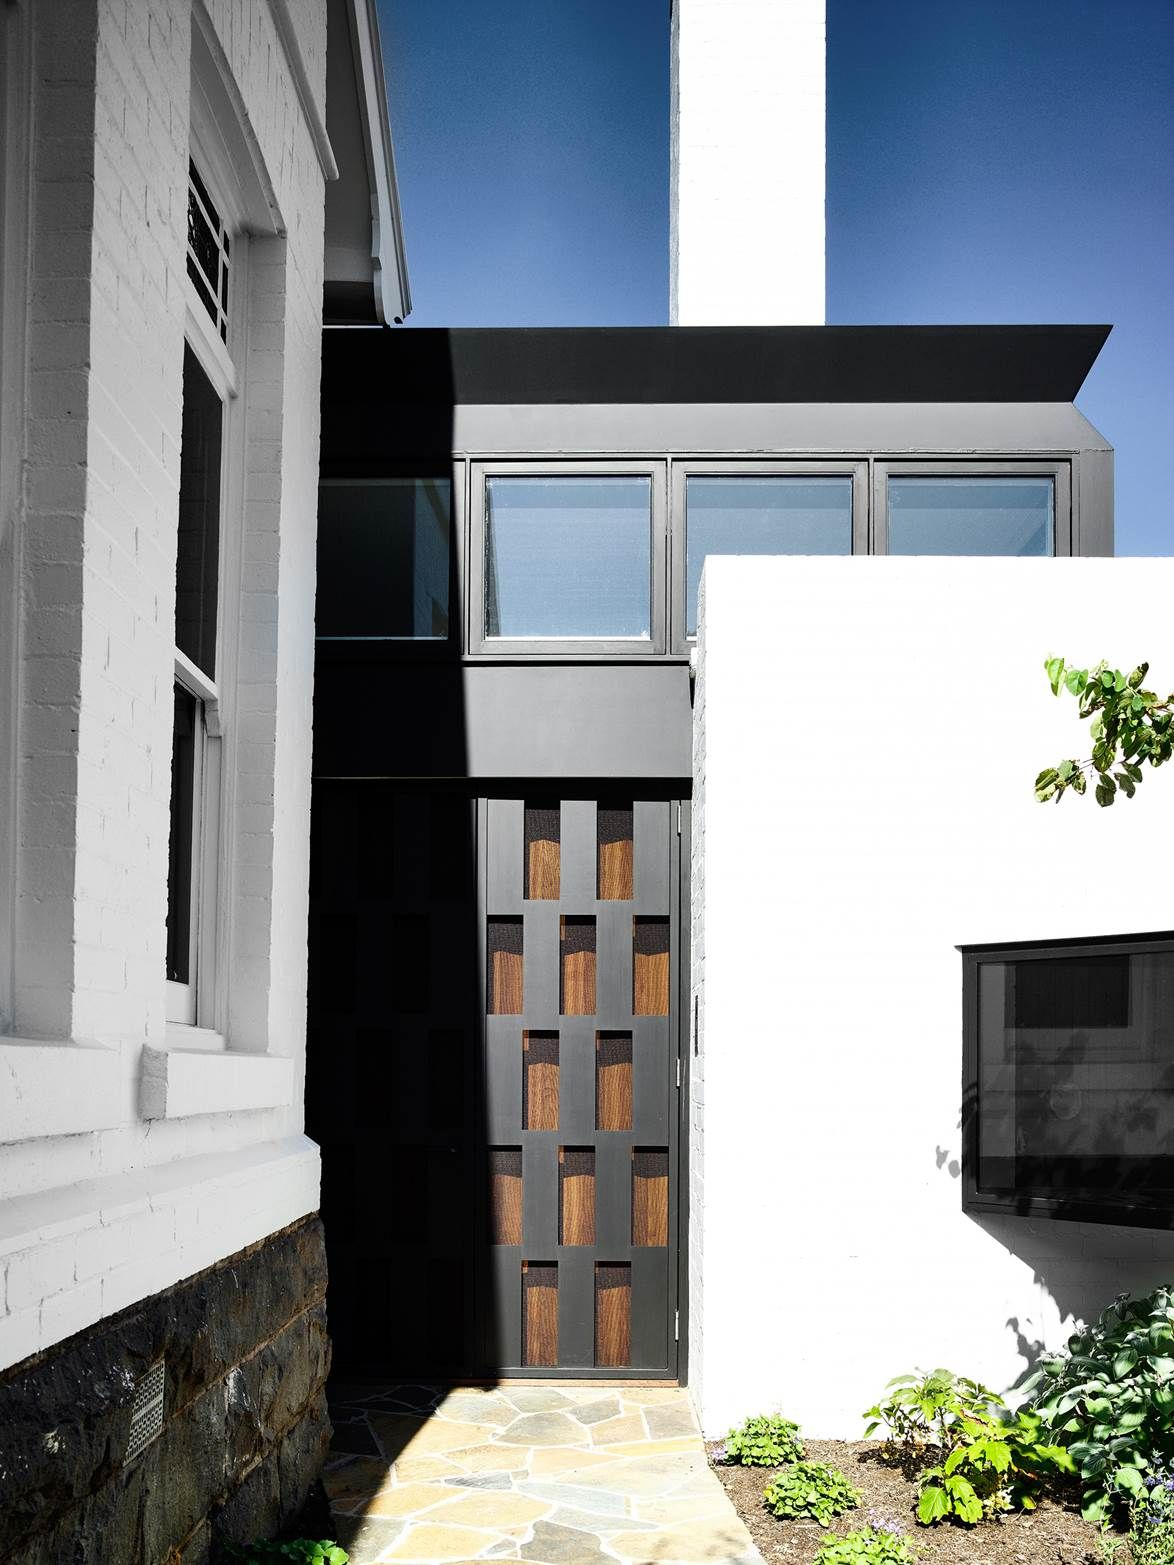 Belmont house by kennedy nolan melbourne vic featuring  beautiful traditional facade also ground breaking australian architect designed homes rh pinterest